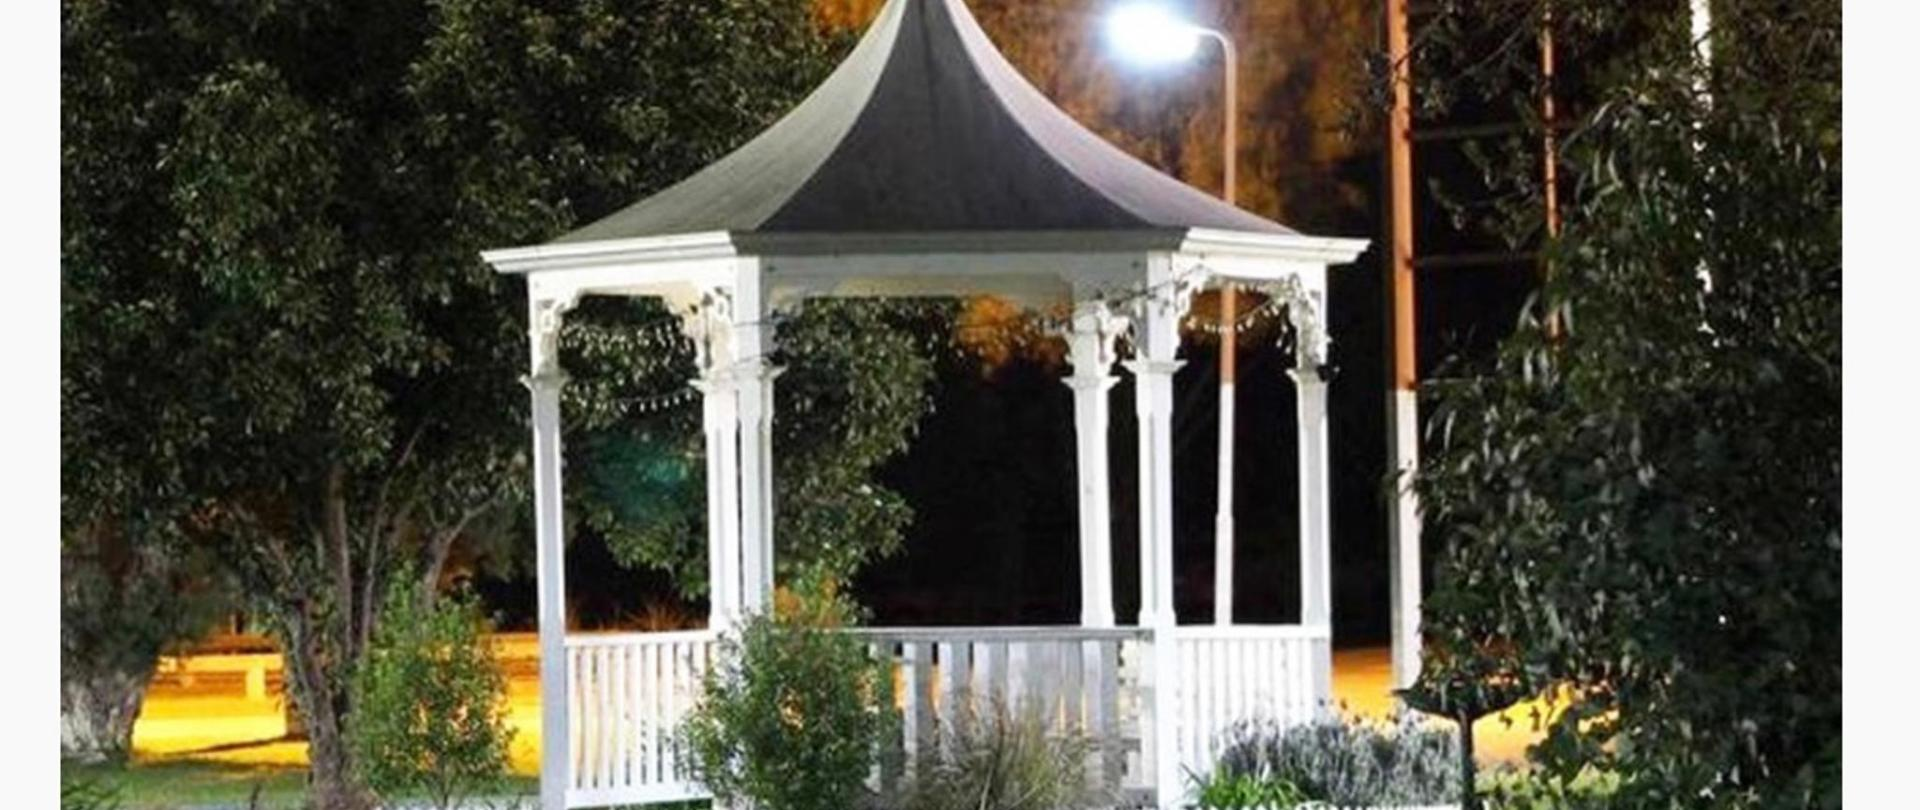 GAZEBO NIGHT PHOTO.jpg